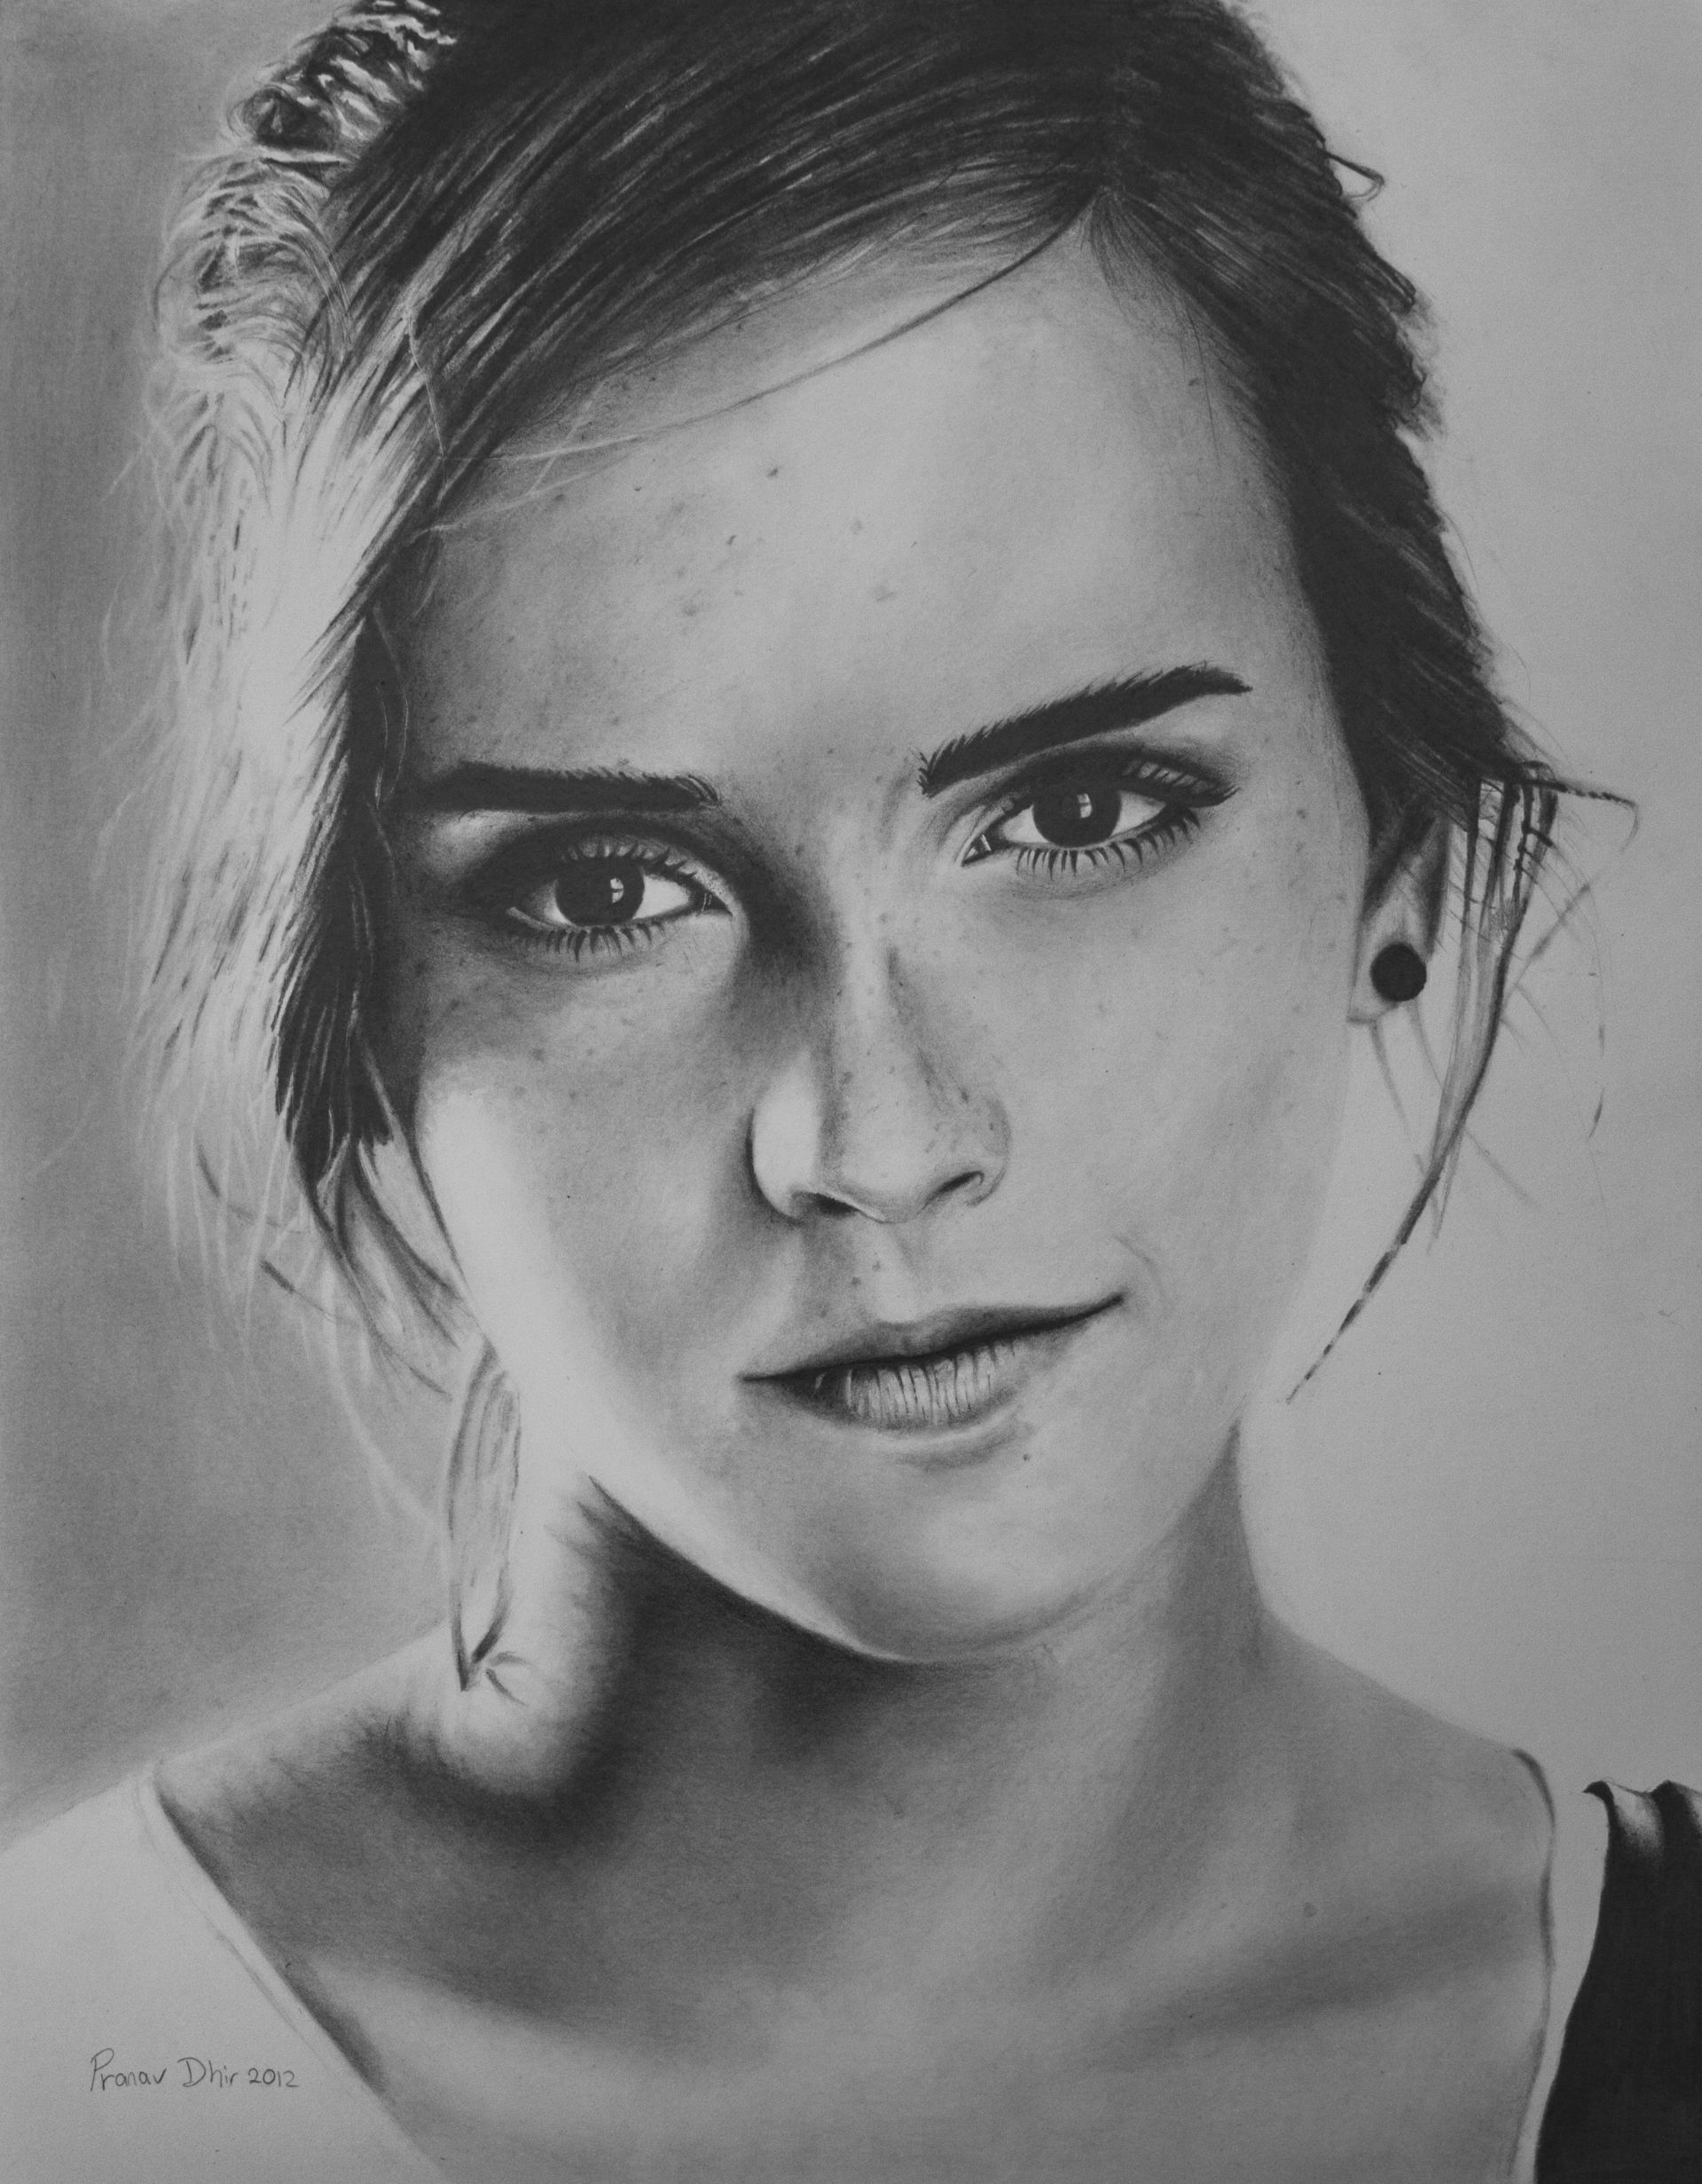 Drawn portrait interesting Amazing Watson drawings Drawing Emma